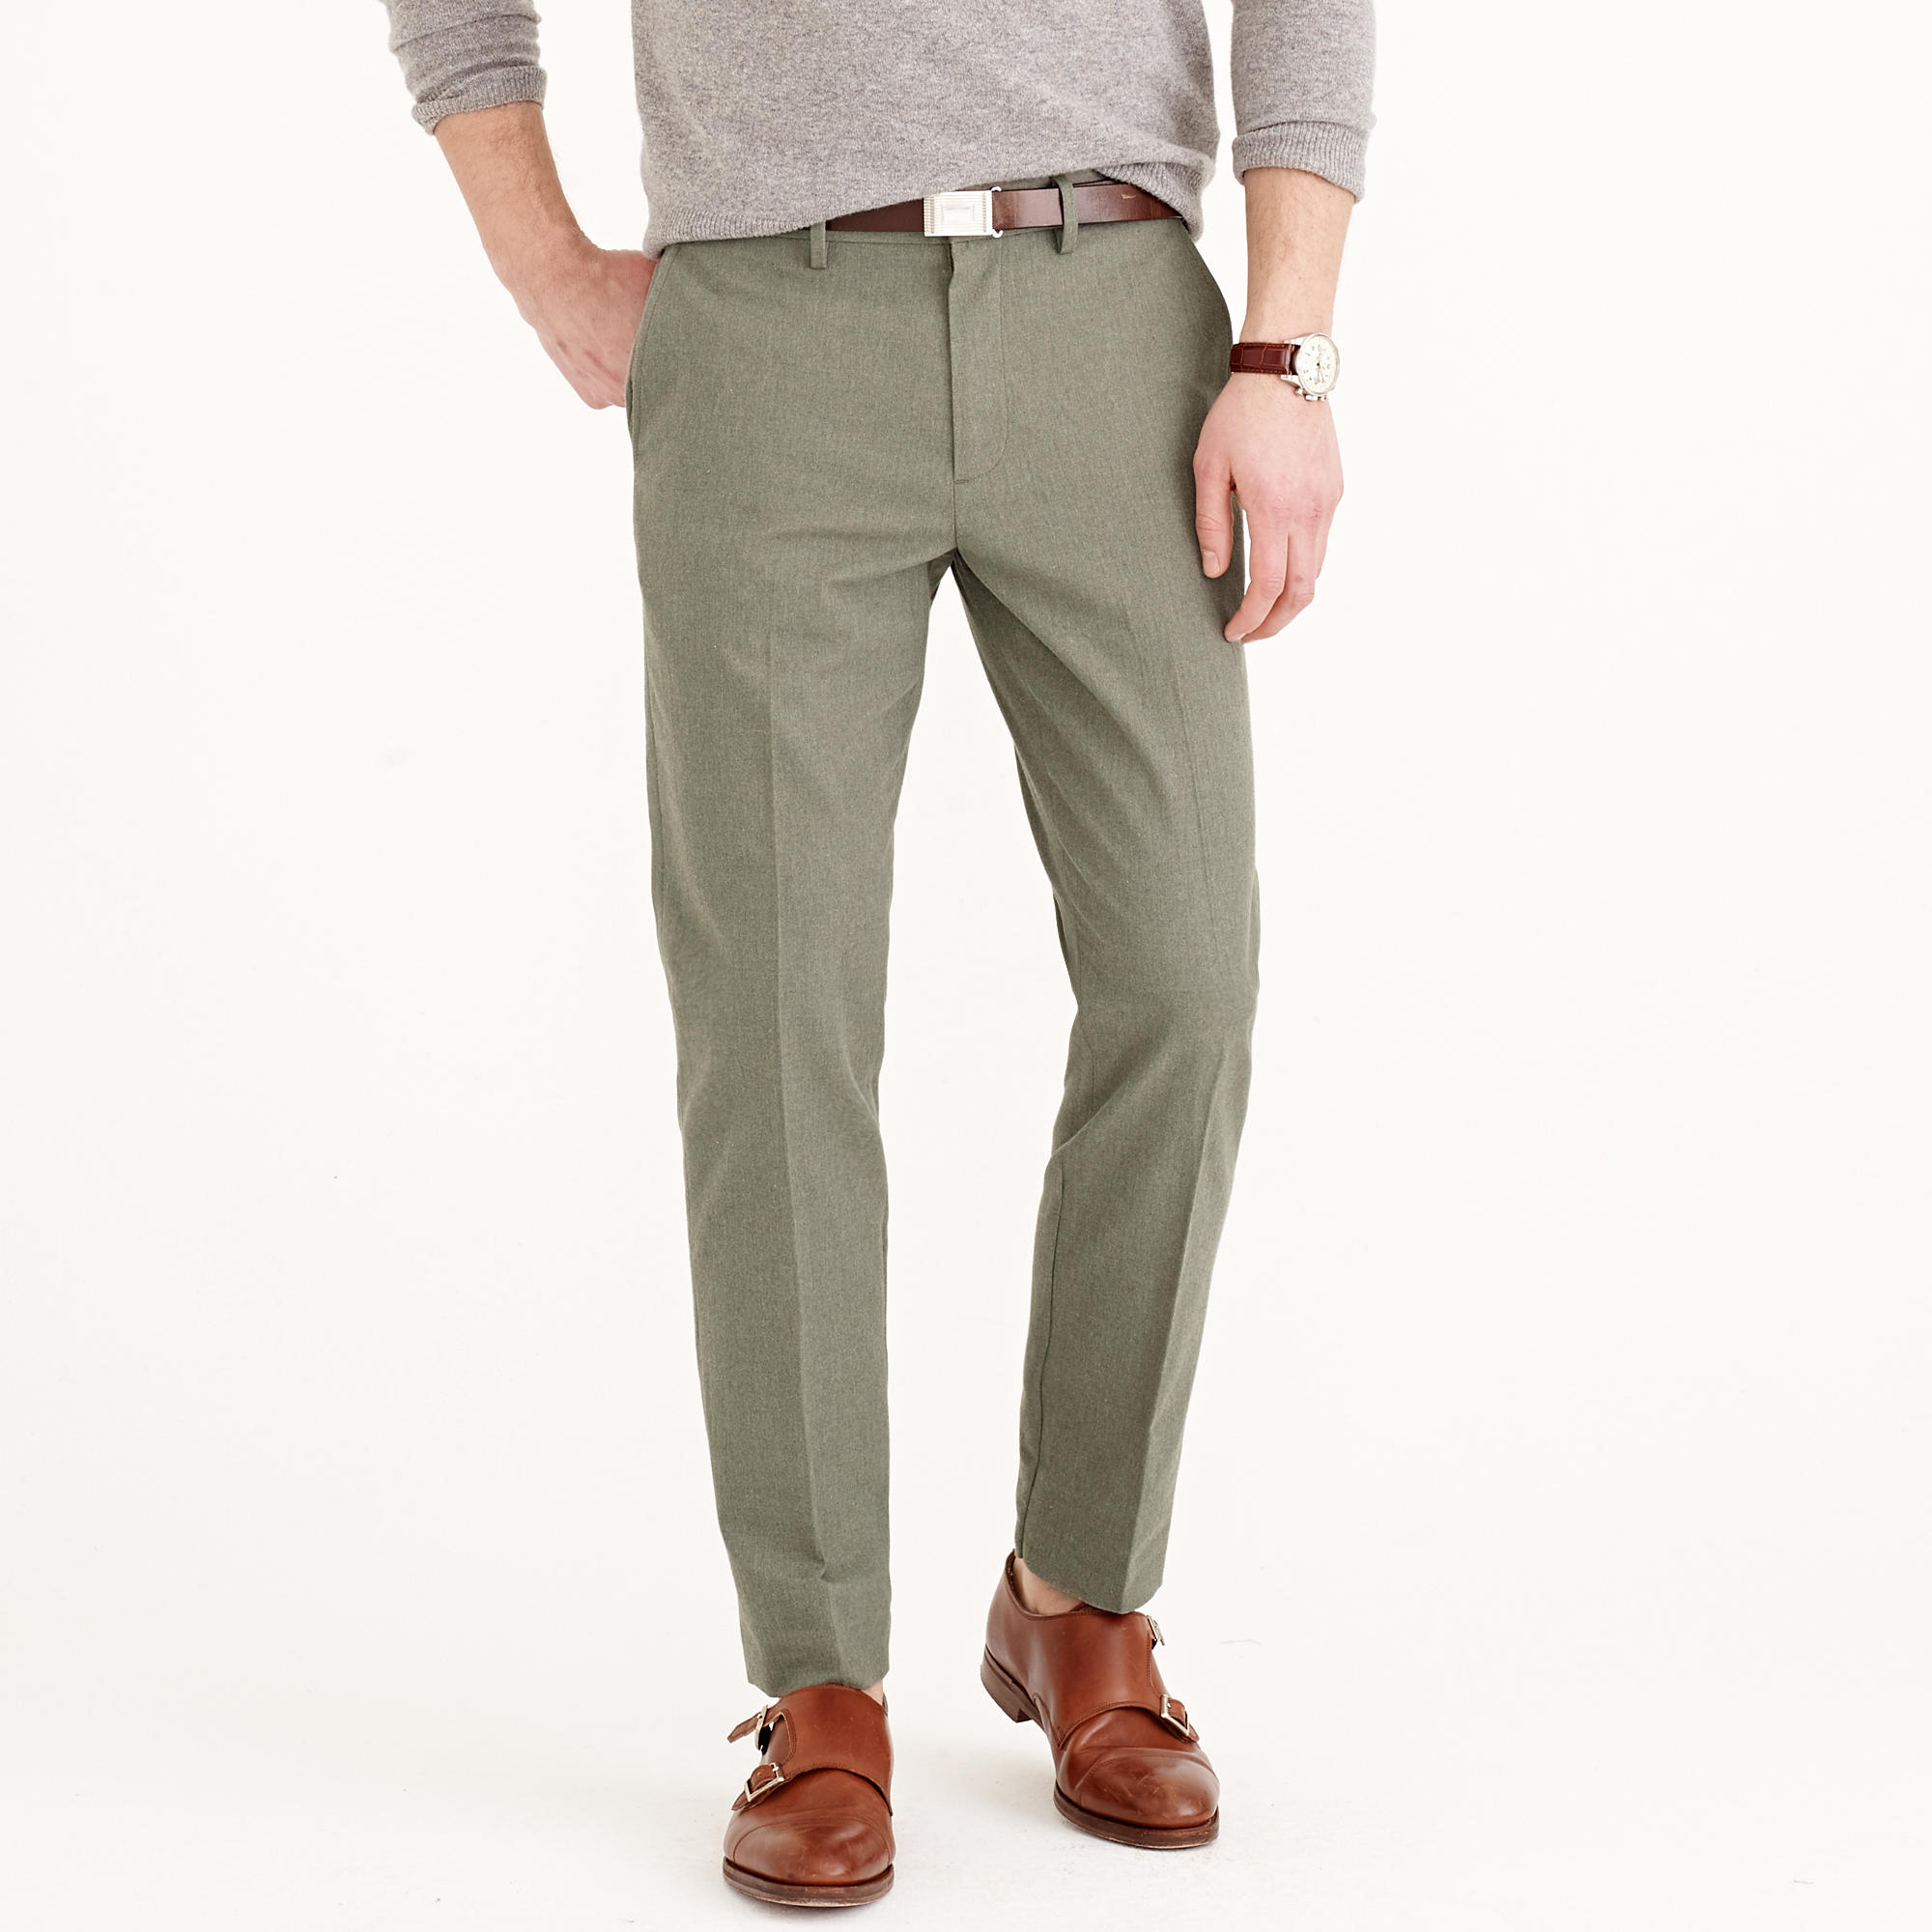 Lyst j crew bowery classic pant in brushed herringbone for J crew mens outfits